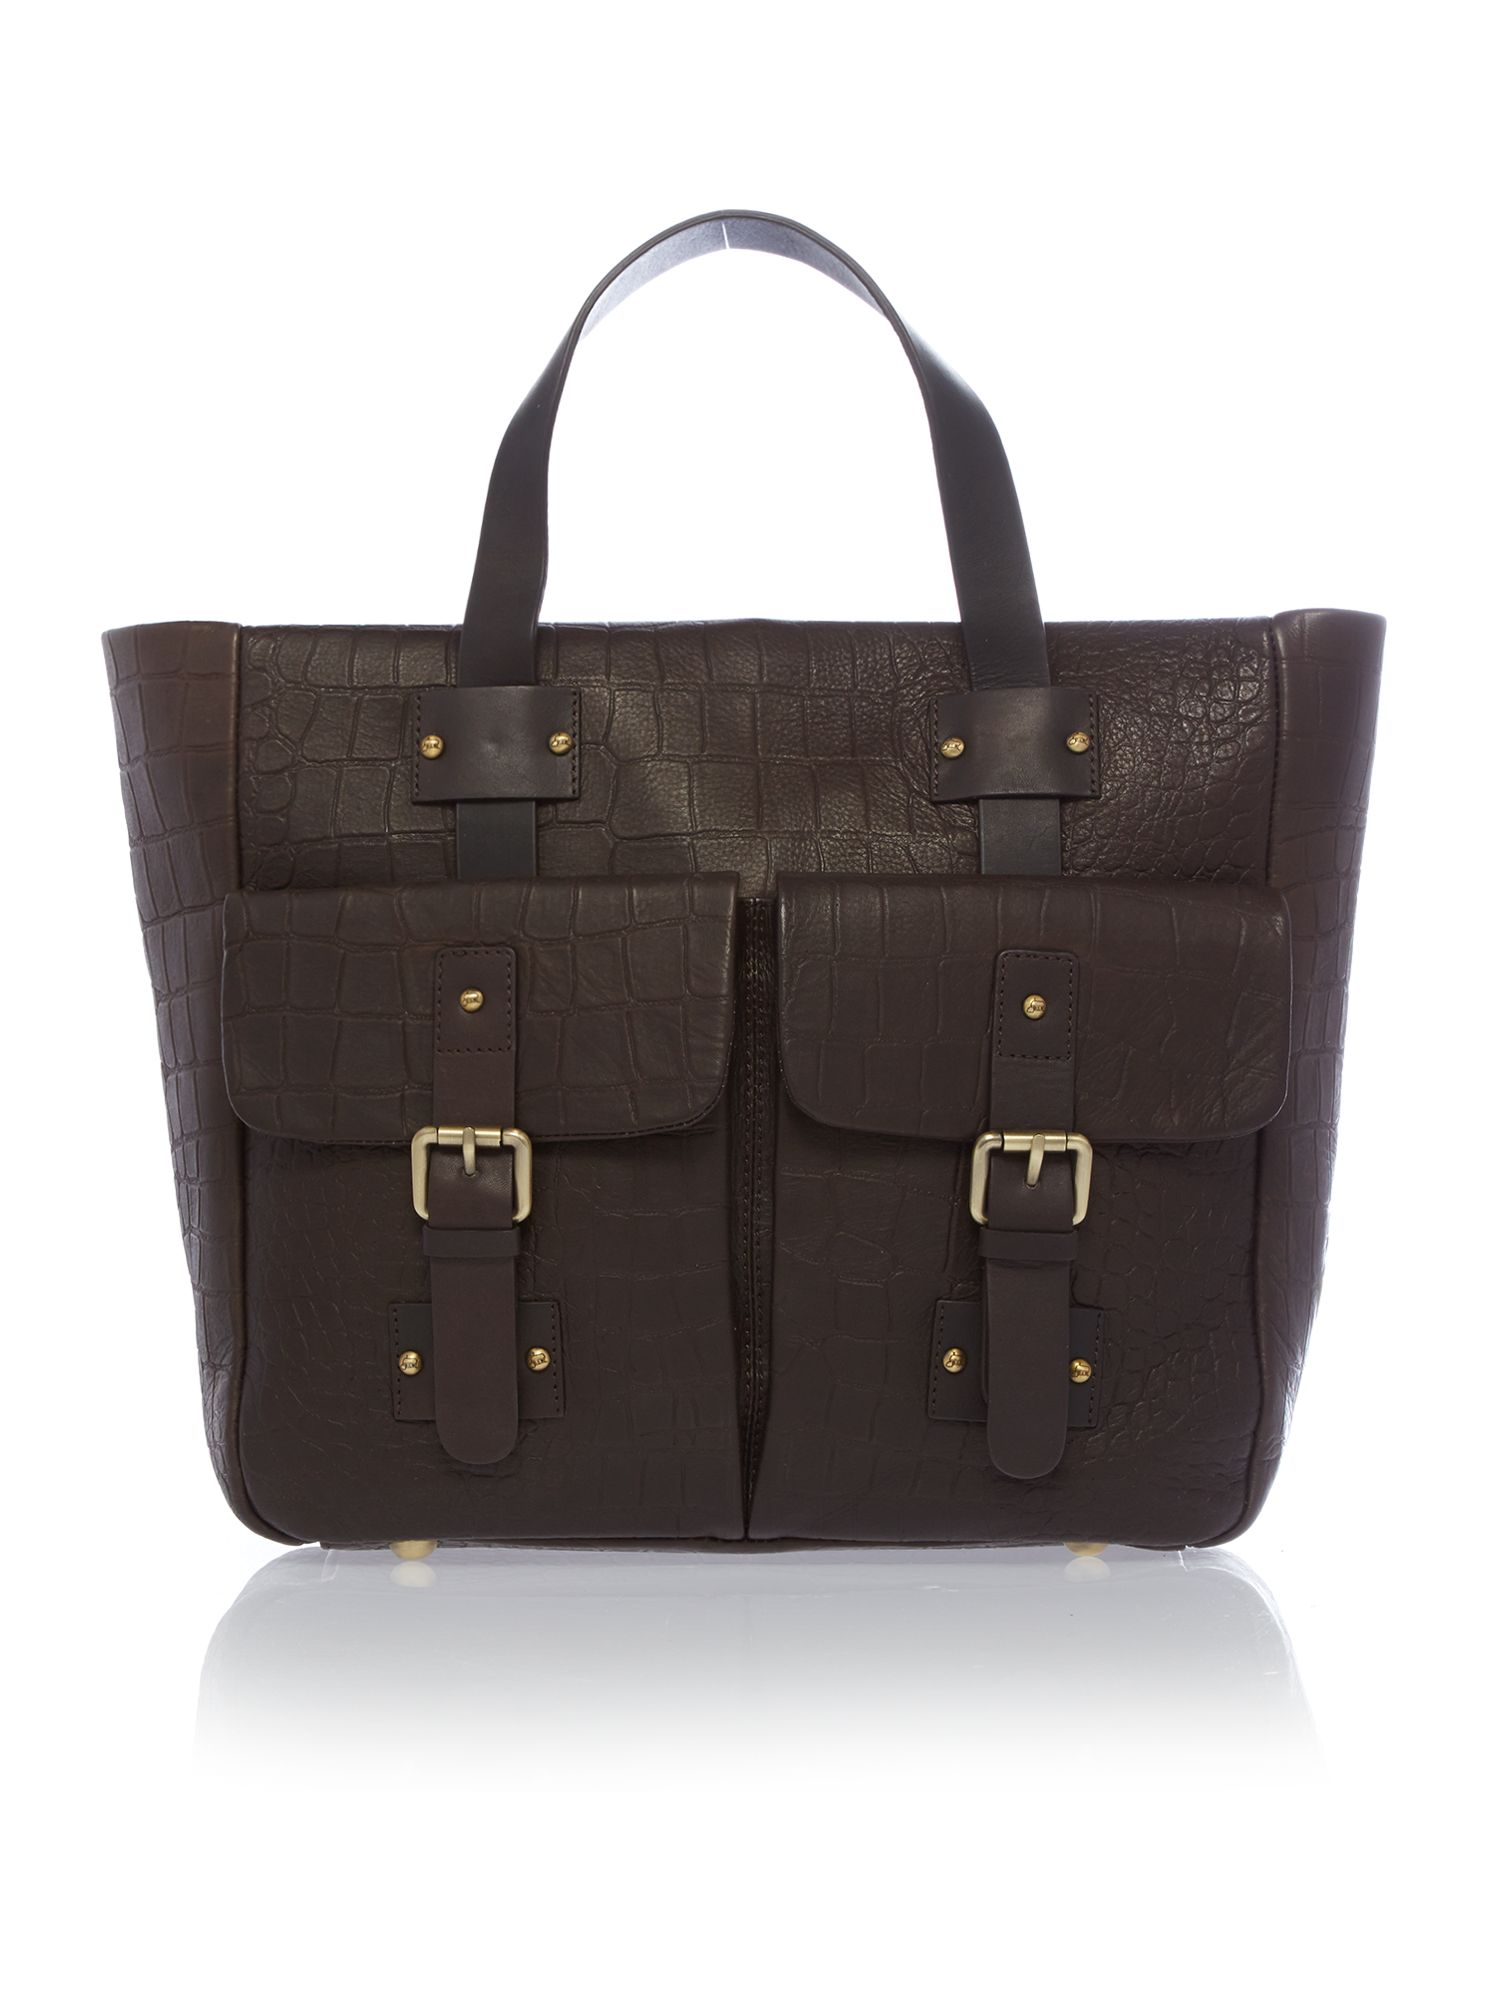 Stowe brown tote bag